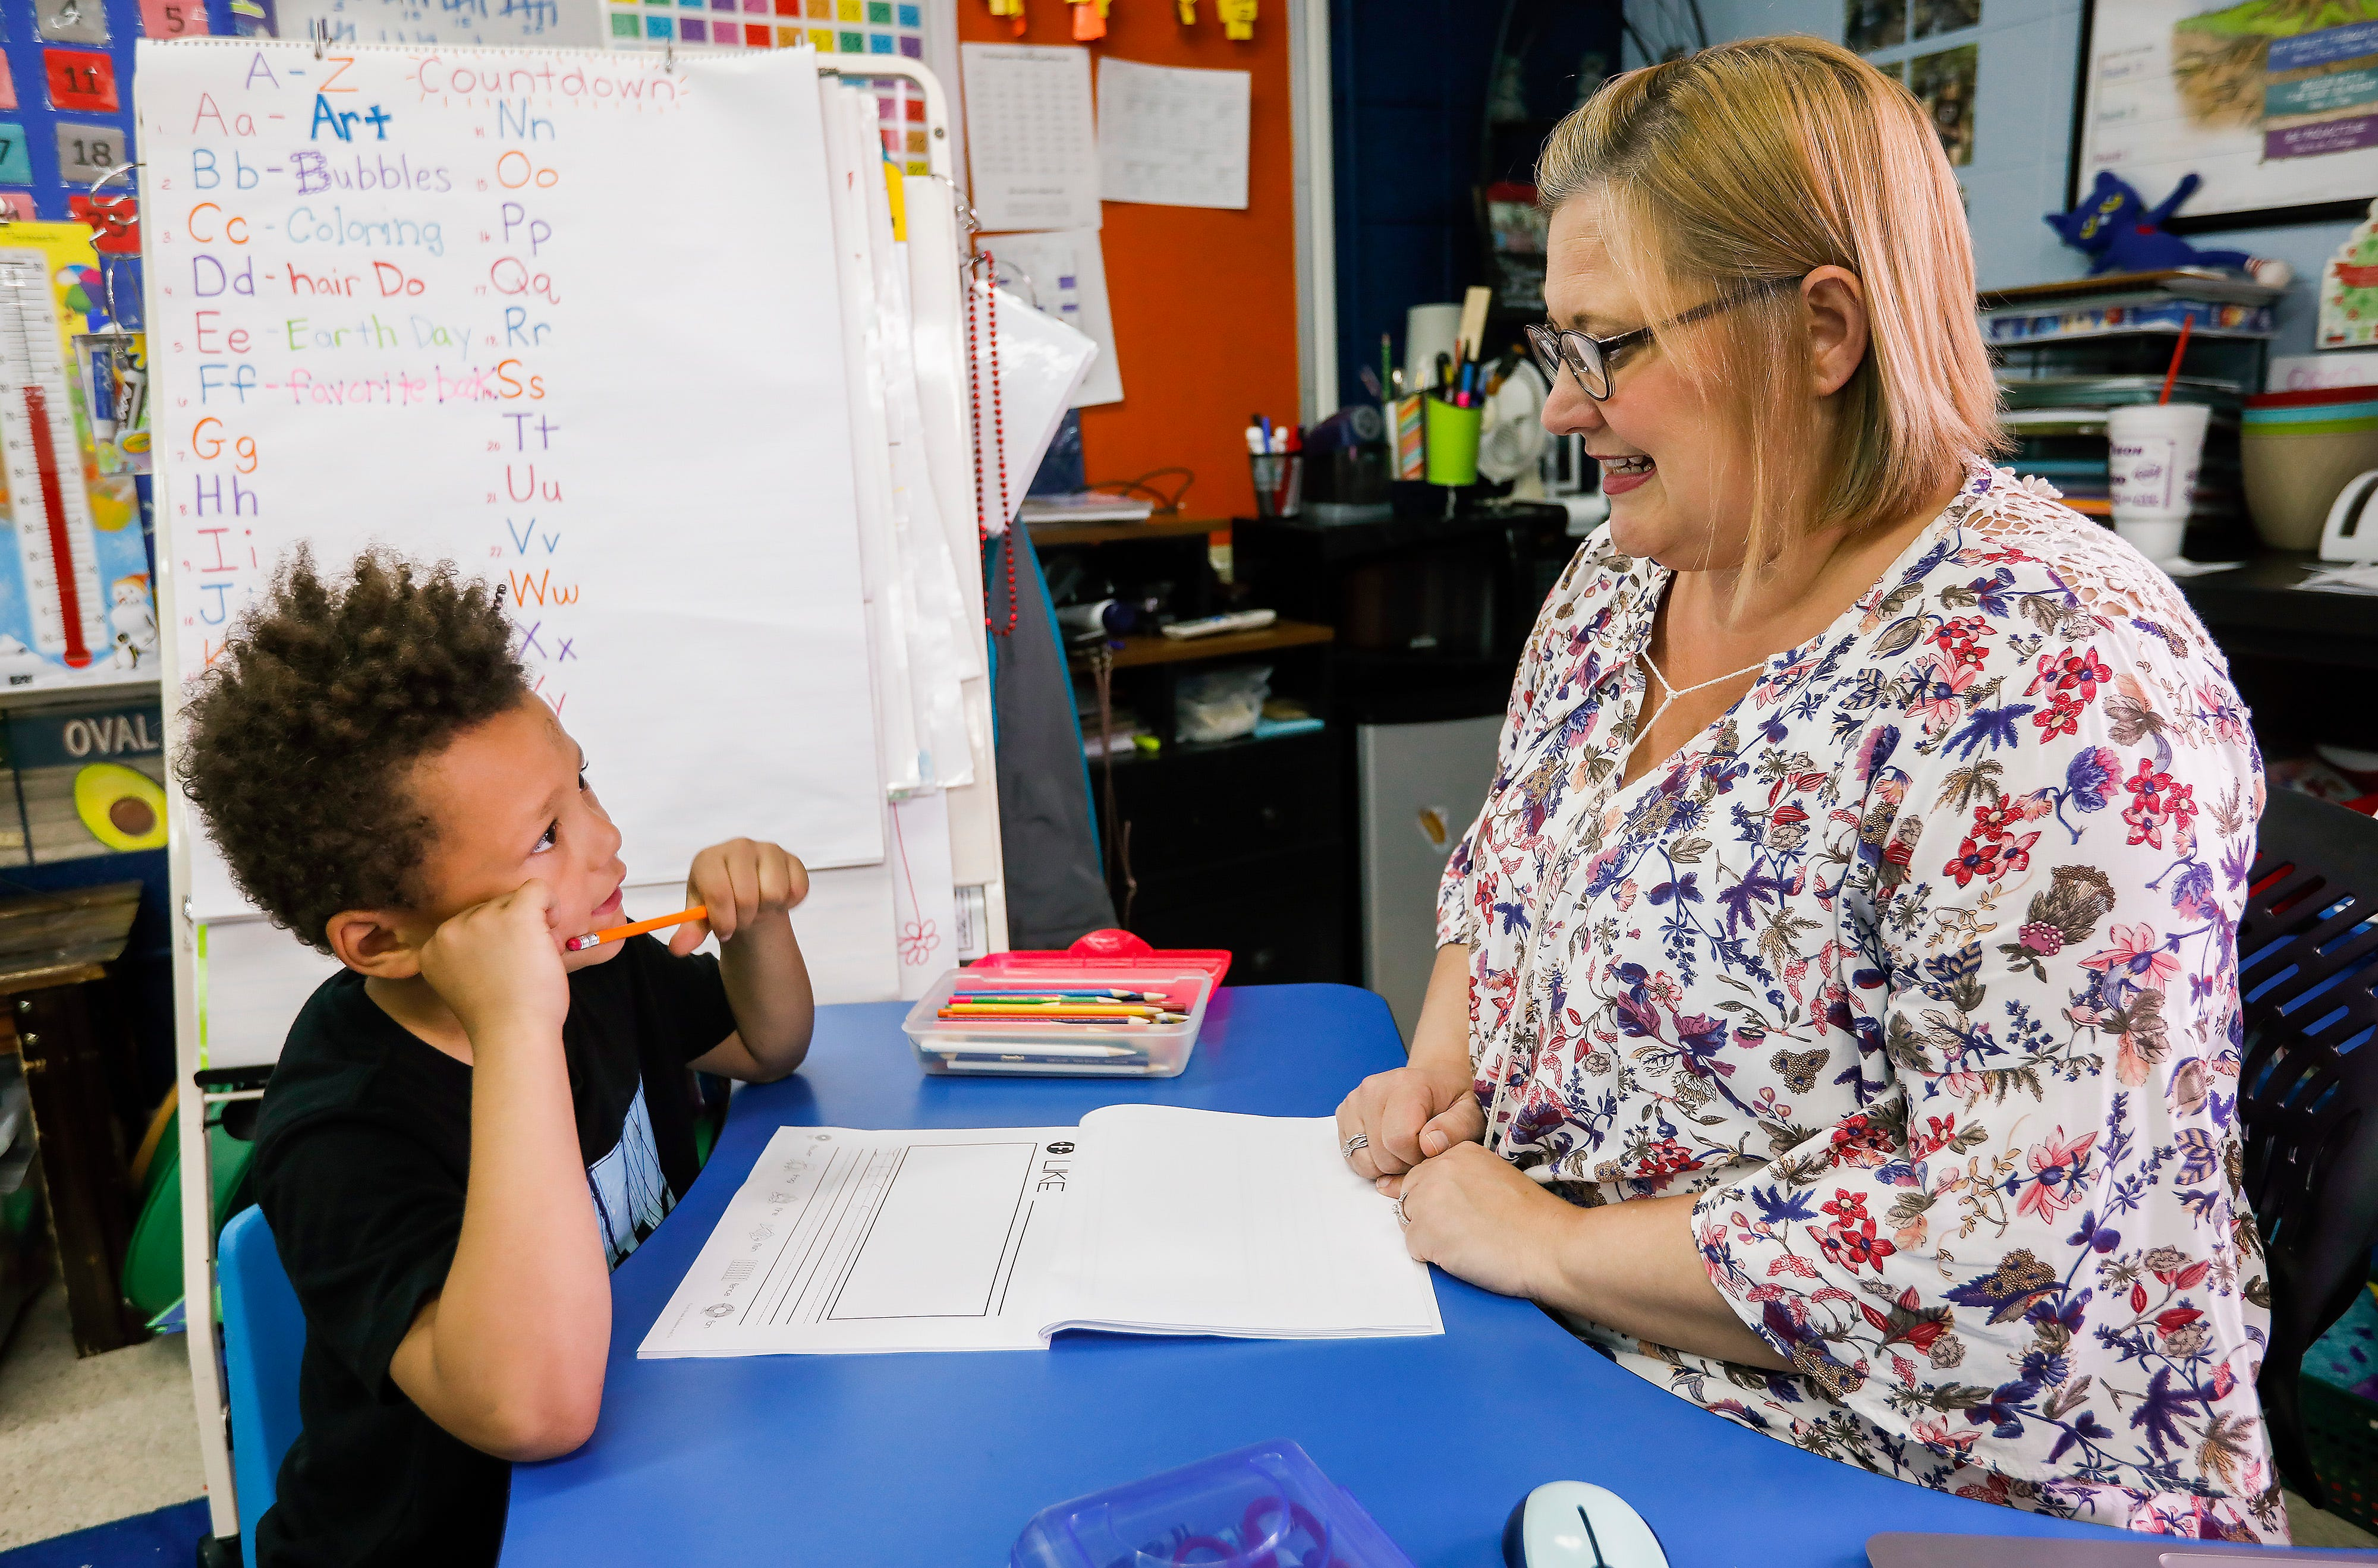 Michelle Pickett works with kindergartner Deacon Hazeltine, 6, on the A-Z countdown at Cowden Elementary School on Tuesday, April 23, 2019.